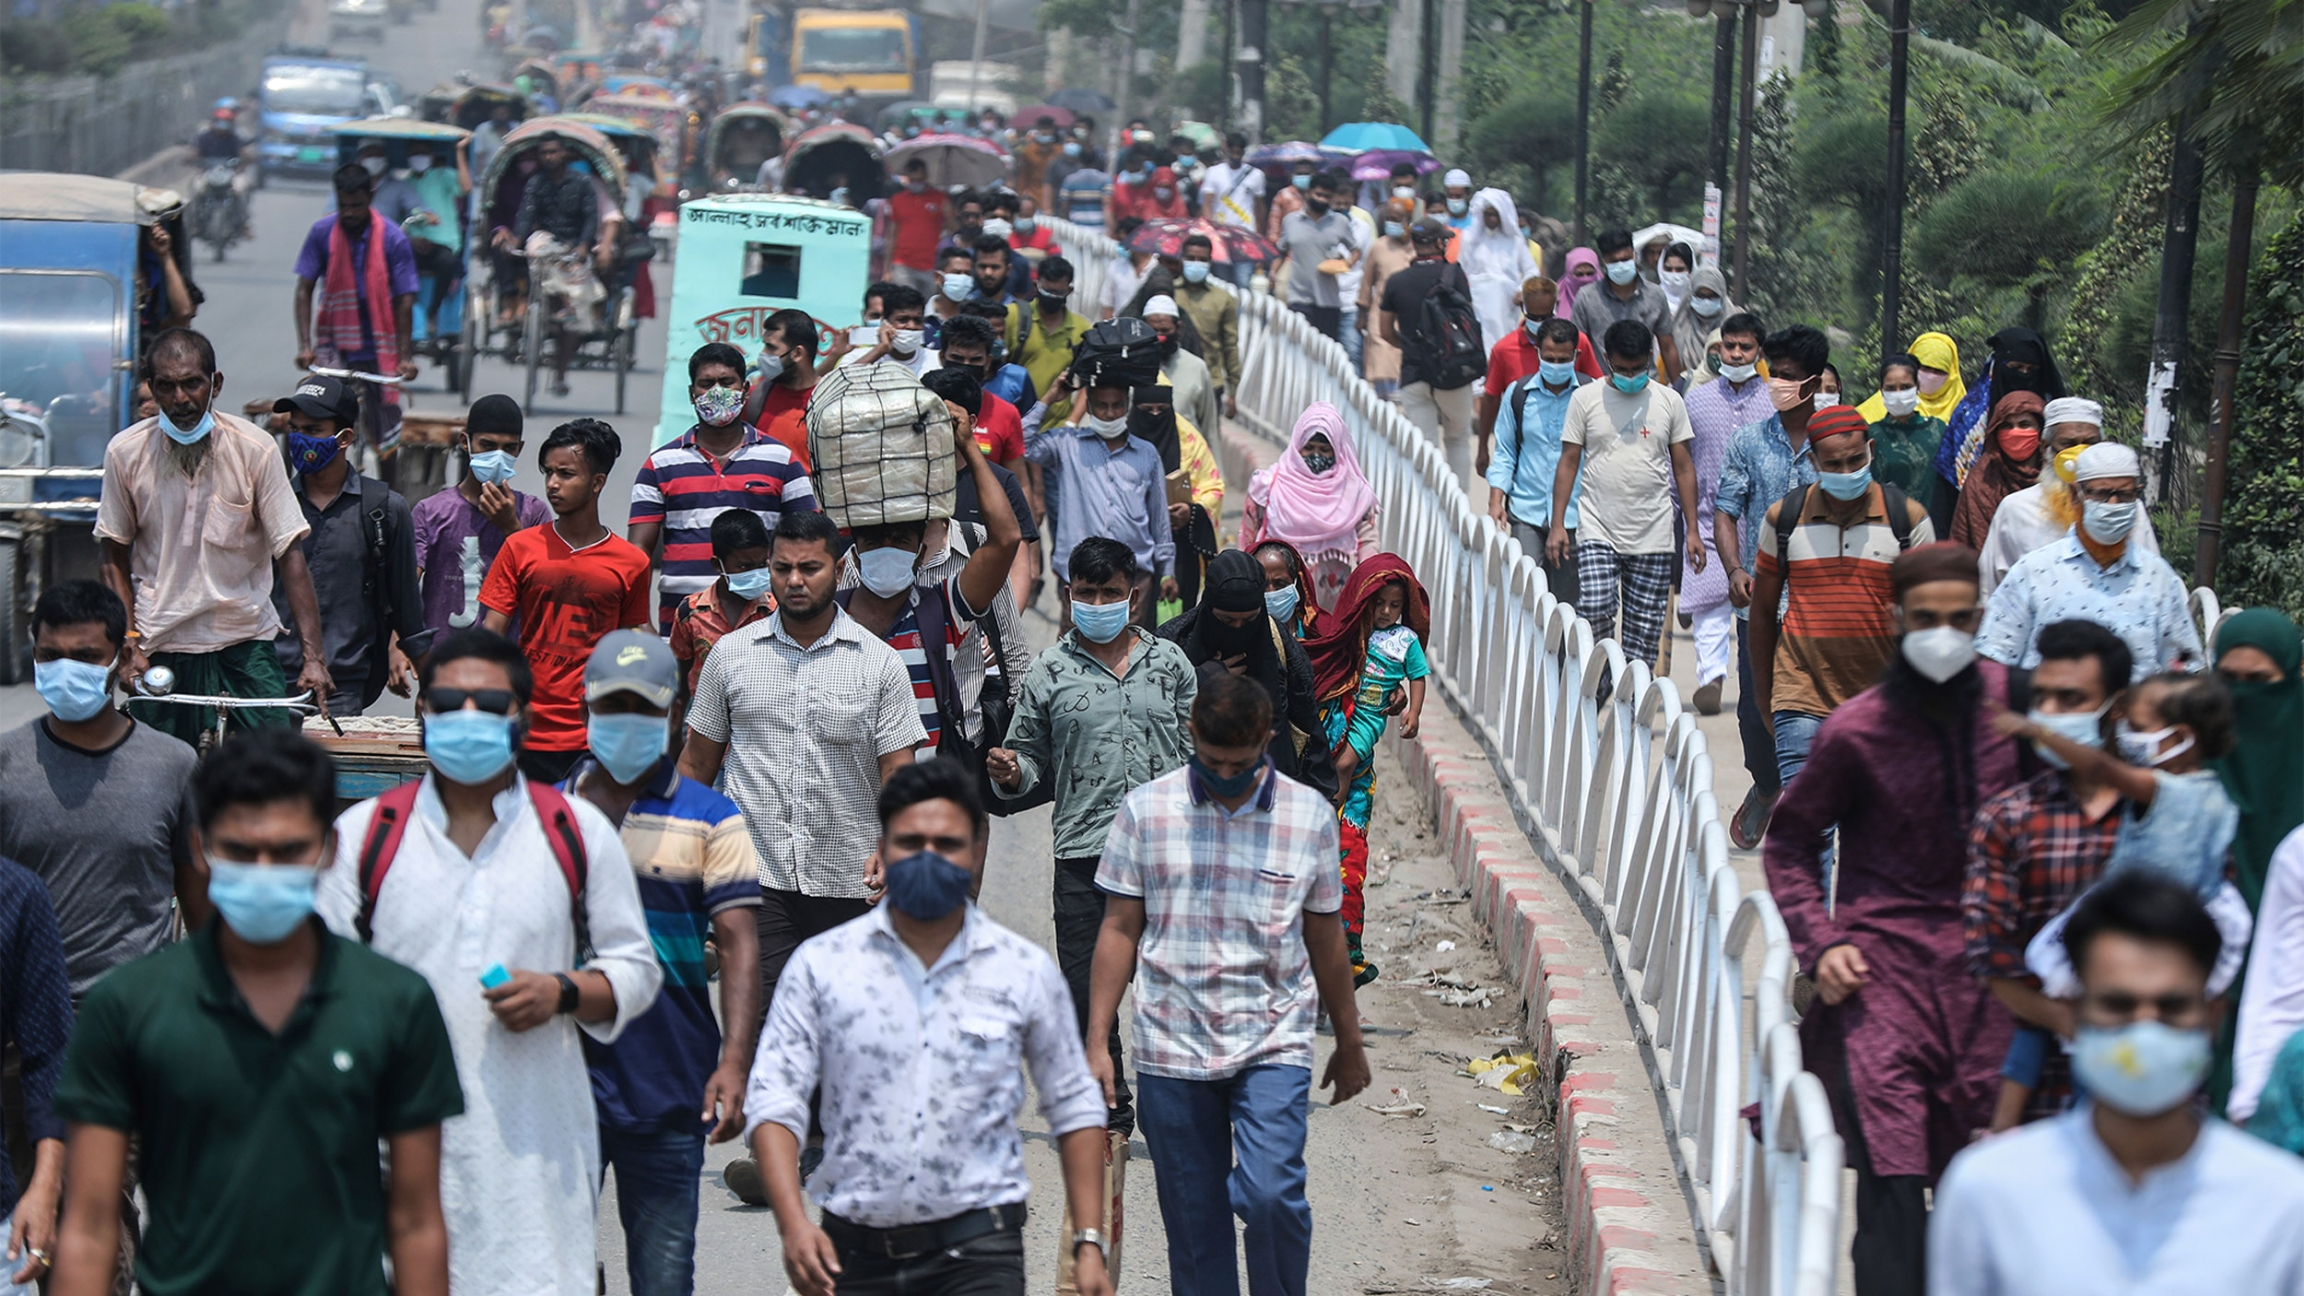 People wearing face masks as a precaution against the coronavirus leave the city to travel to their native places ahead of Eid al-Fitr in Dhaka, Bangladesh